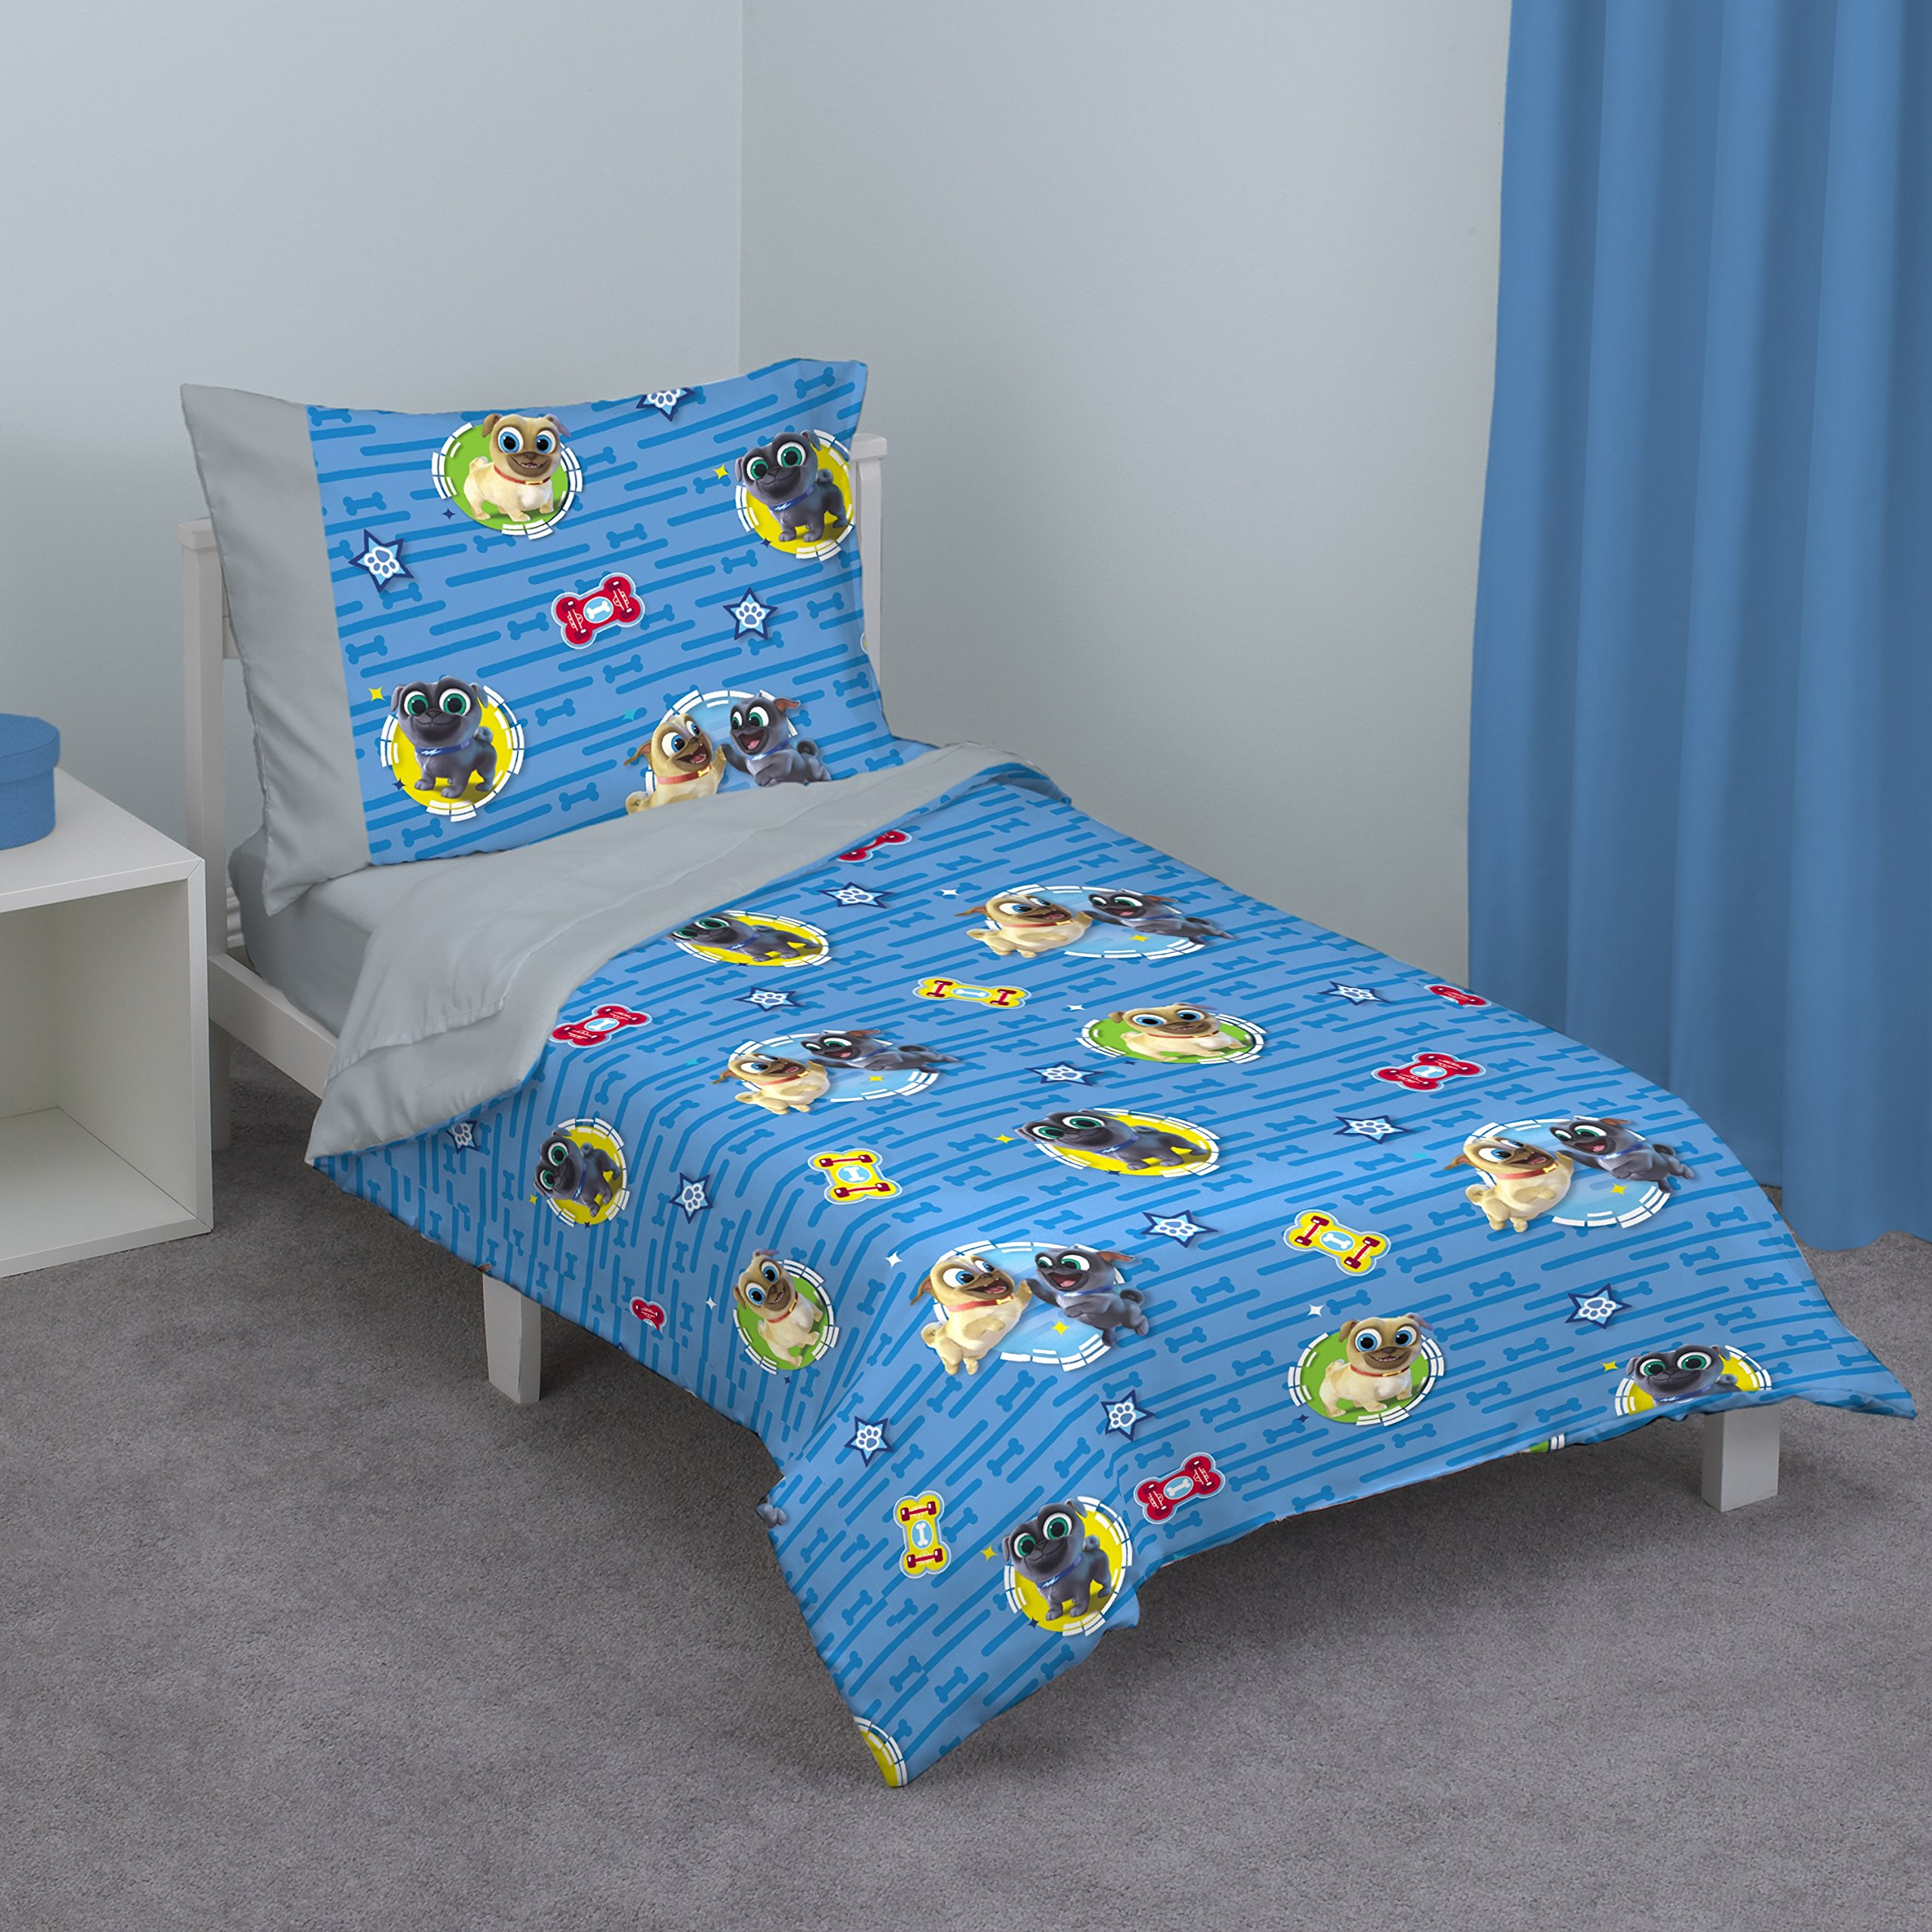 Disney Puppy Dog Pals 4 Piece Toddler Bed Set, Blue/Red/Yellow/Green by Disney